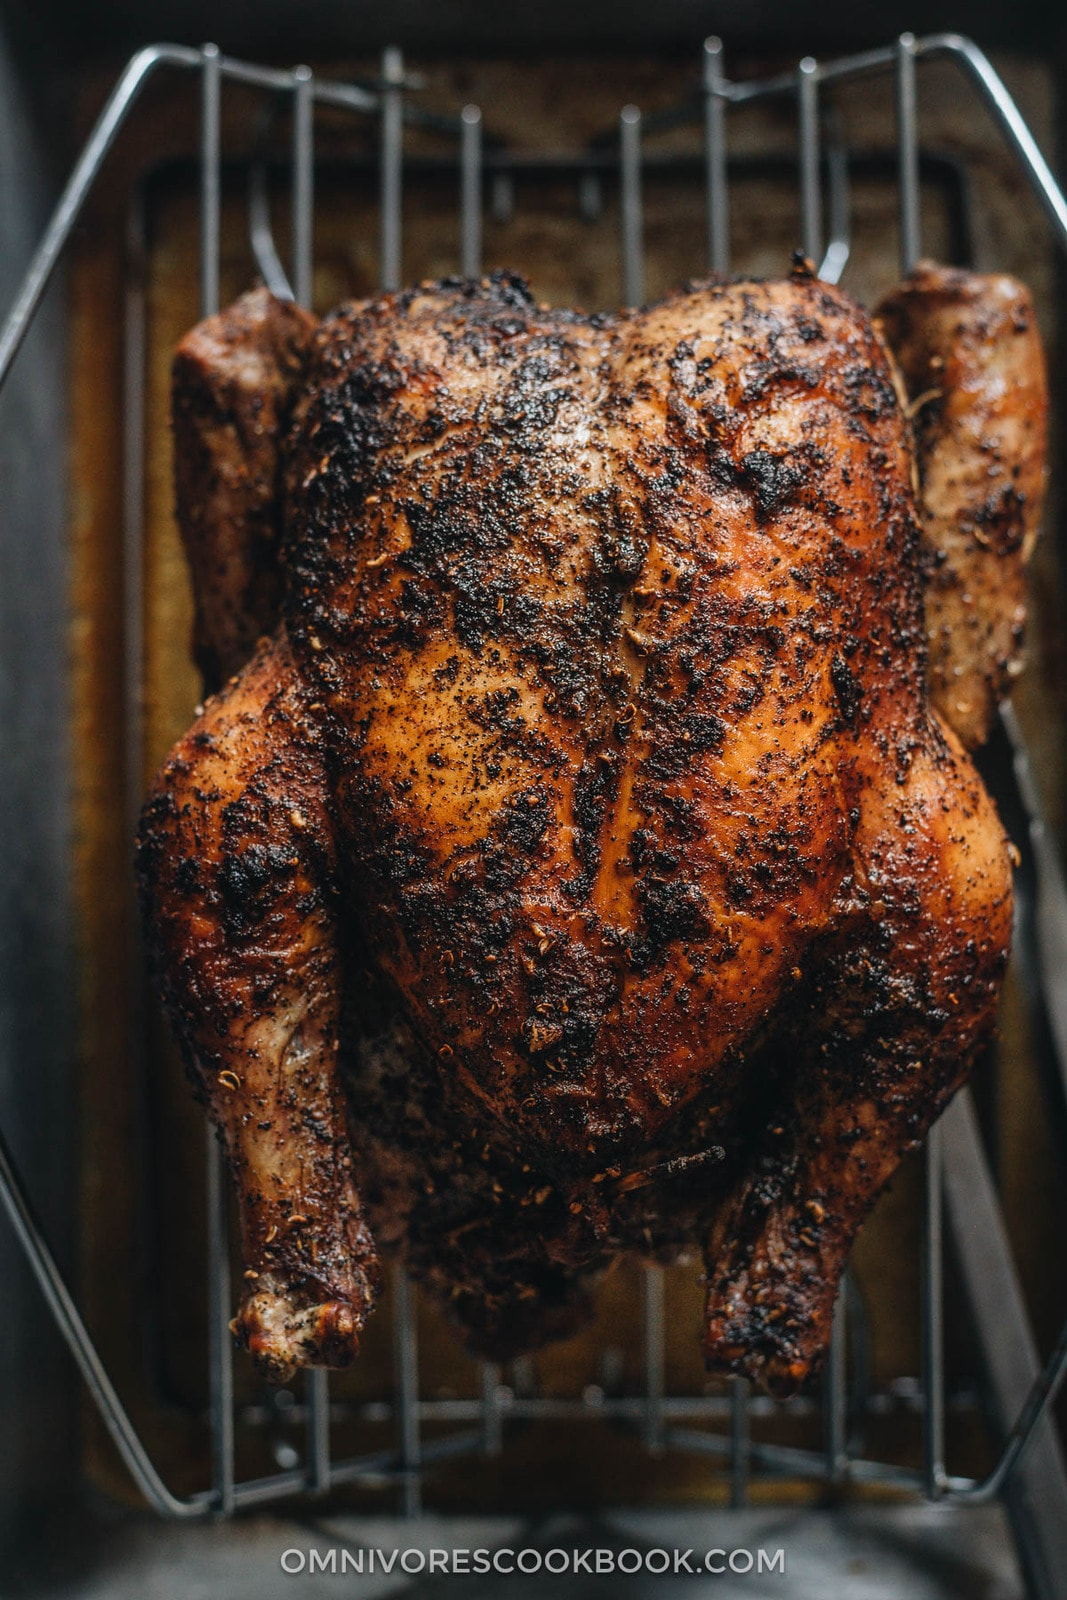 Sichuan peppercorn roasted whole chicken